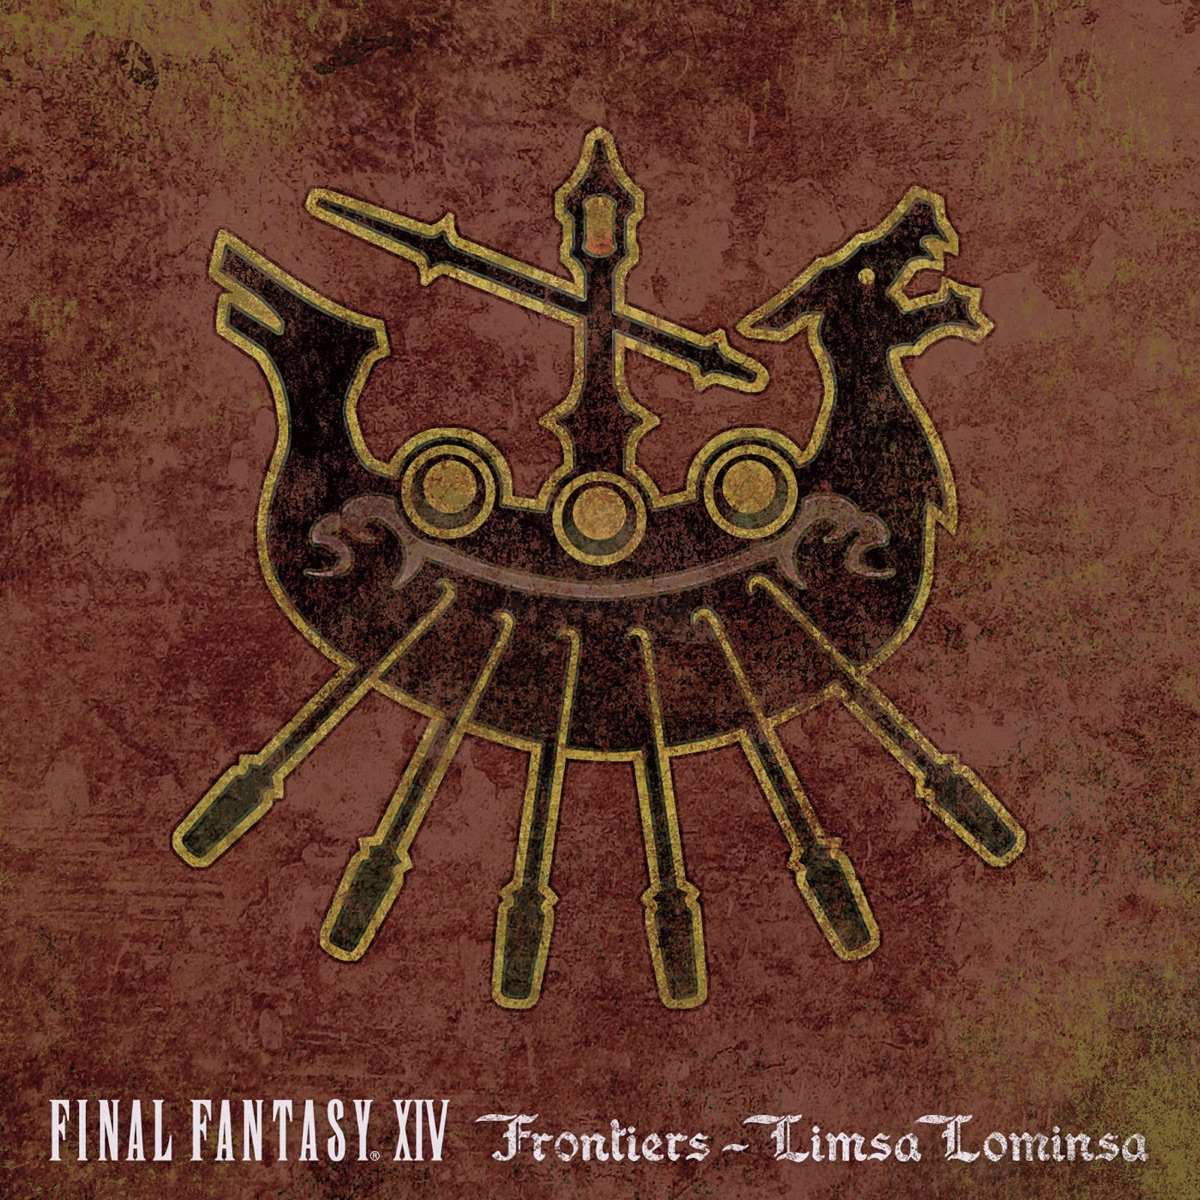 FINAL FANTASY XIV Frontiers - Limsa Lominsa Album Cover by